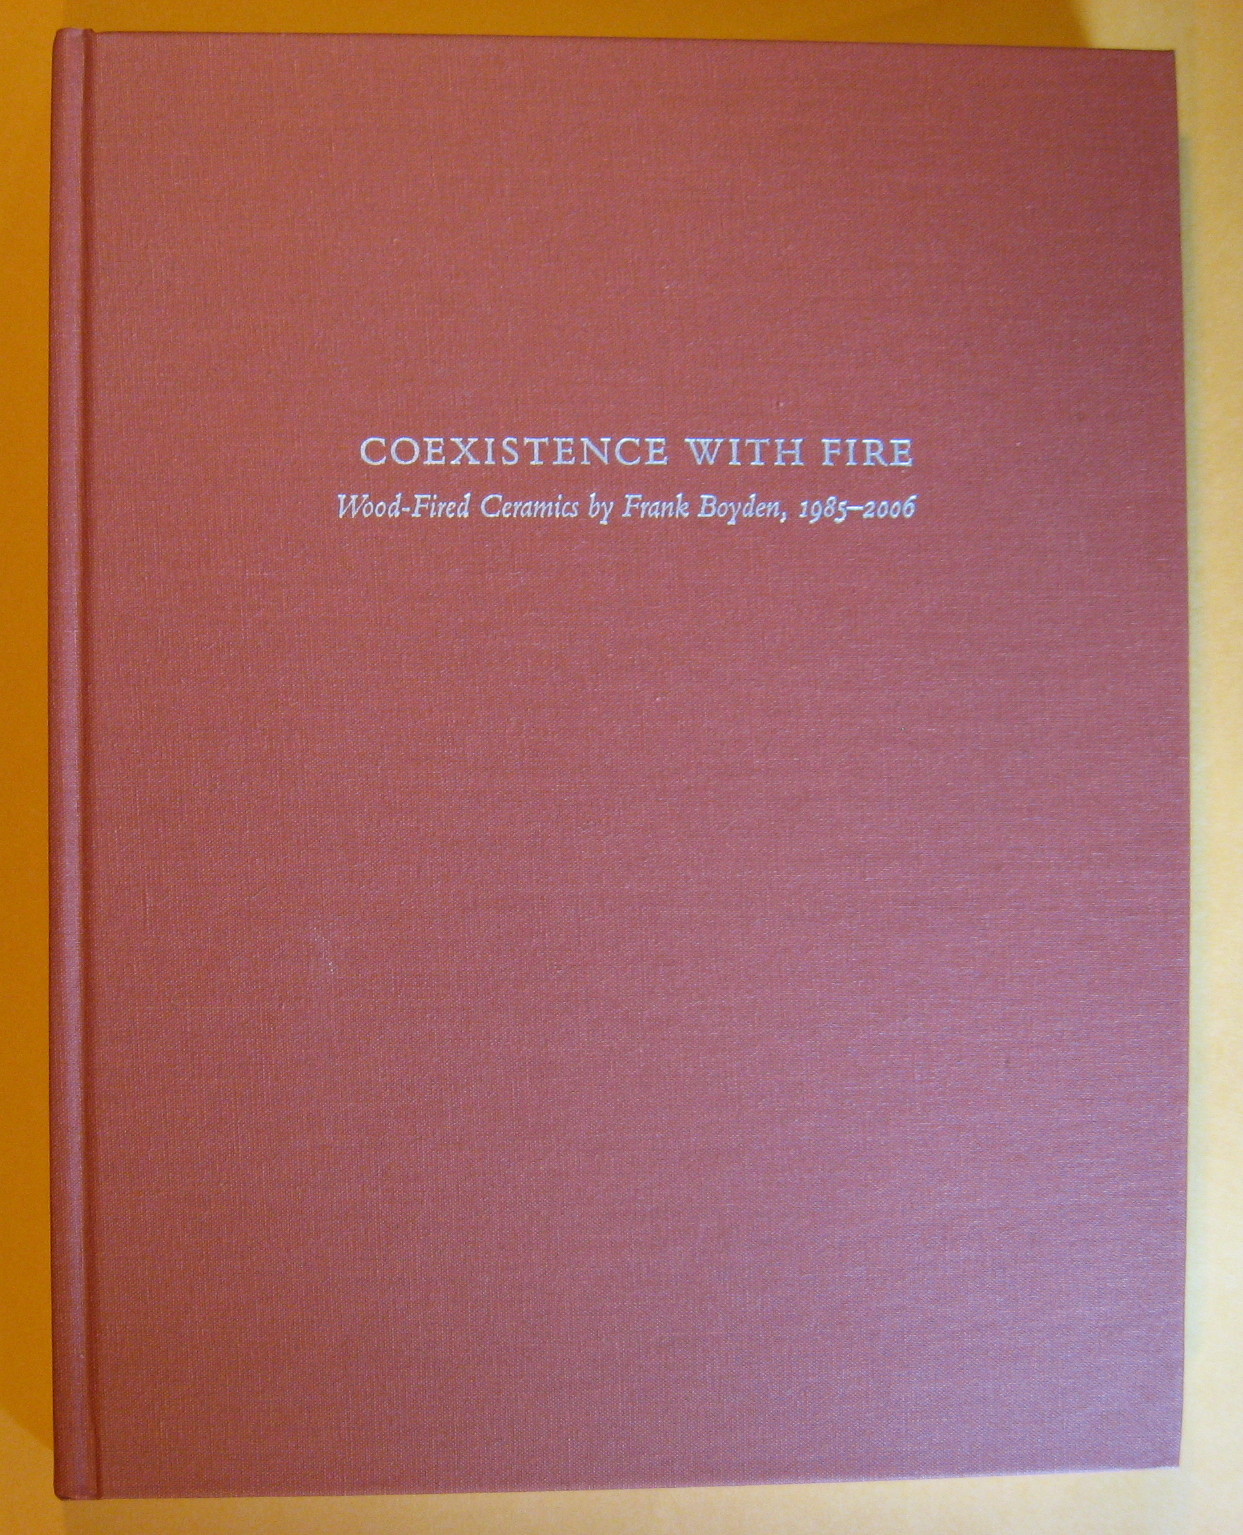 Coexistence With Fire: Wood-Fired Ceramics by Frank Boyden 1985-2006, Boyden, Frank